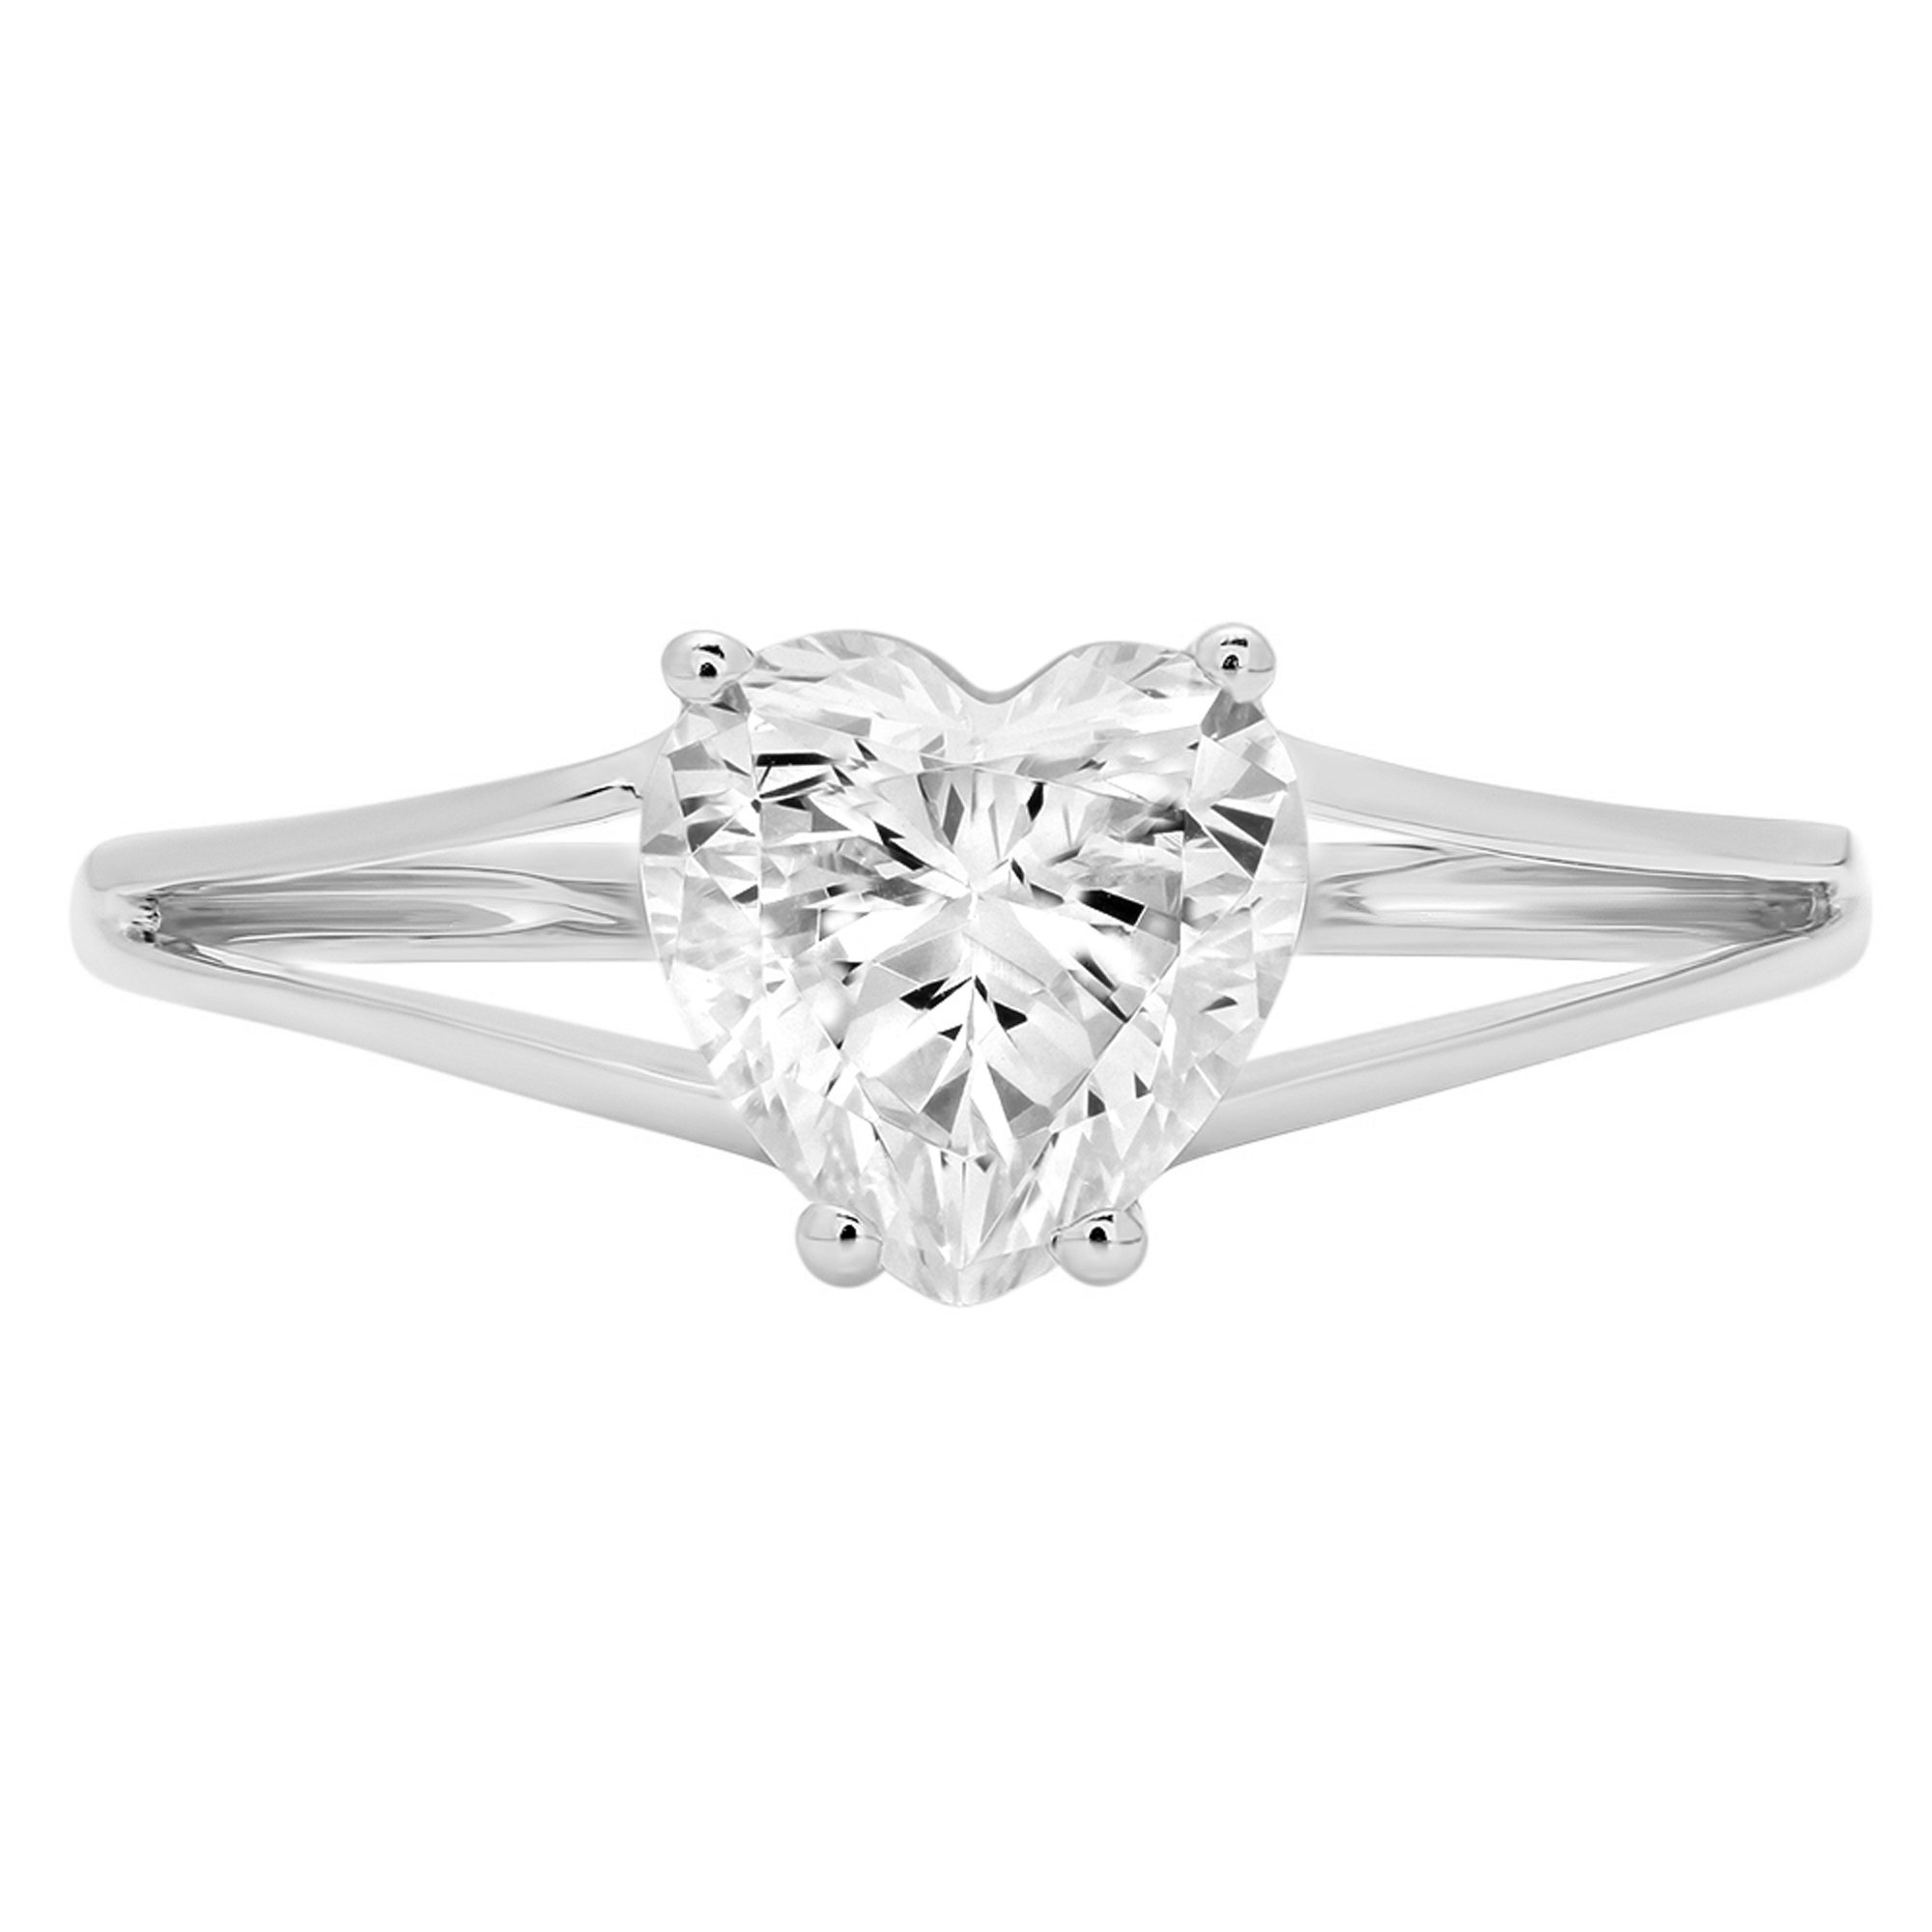 1.45ct Brilliant Heart Cut Solitaire split shank Highest Quality Lab Created White Sapphire Ideal VVS1 D 4-Prong Classic Designer Statement Ring Solid Real 14k White Gold for Women